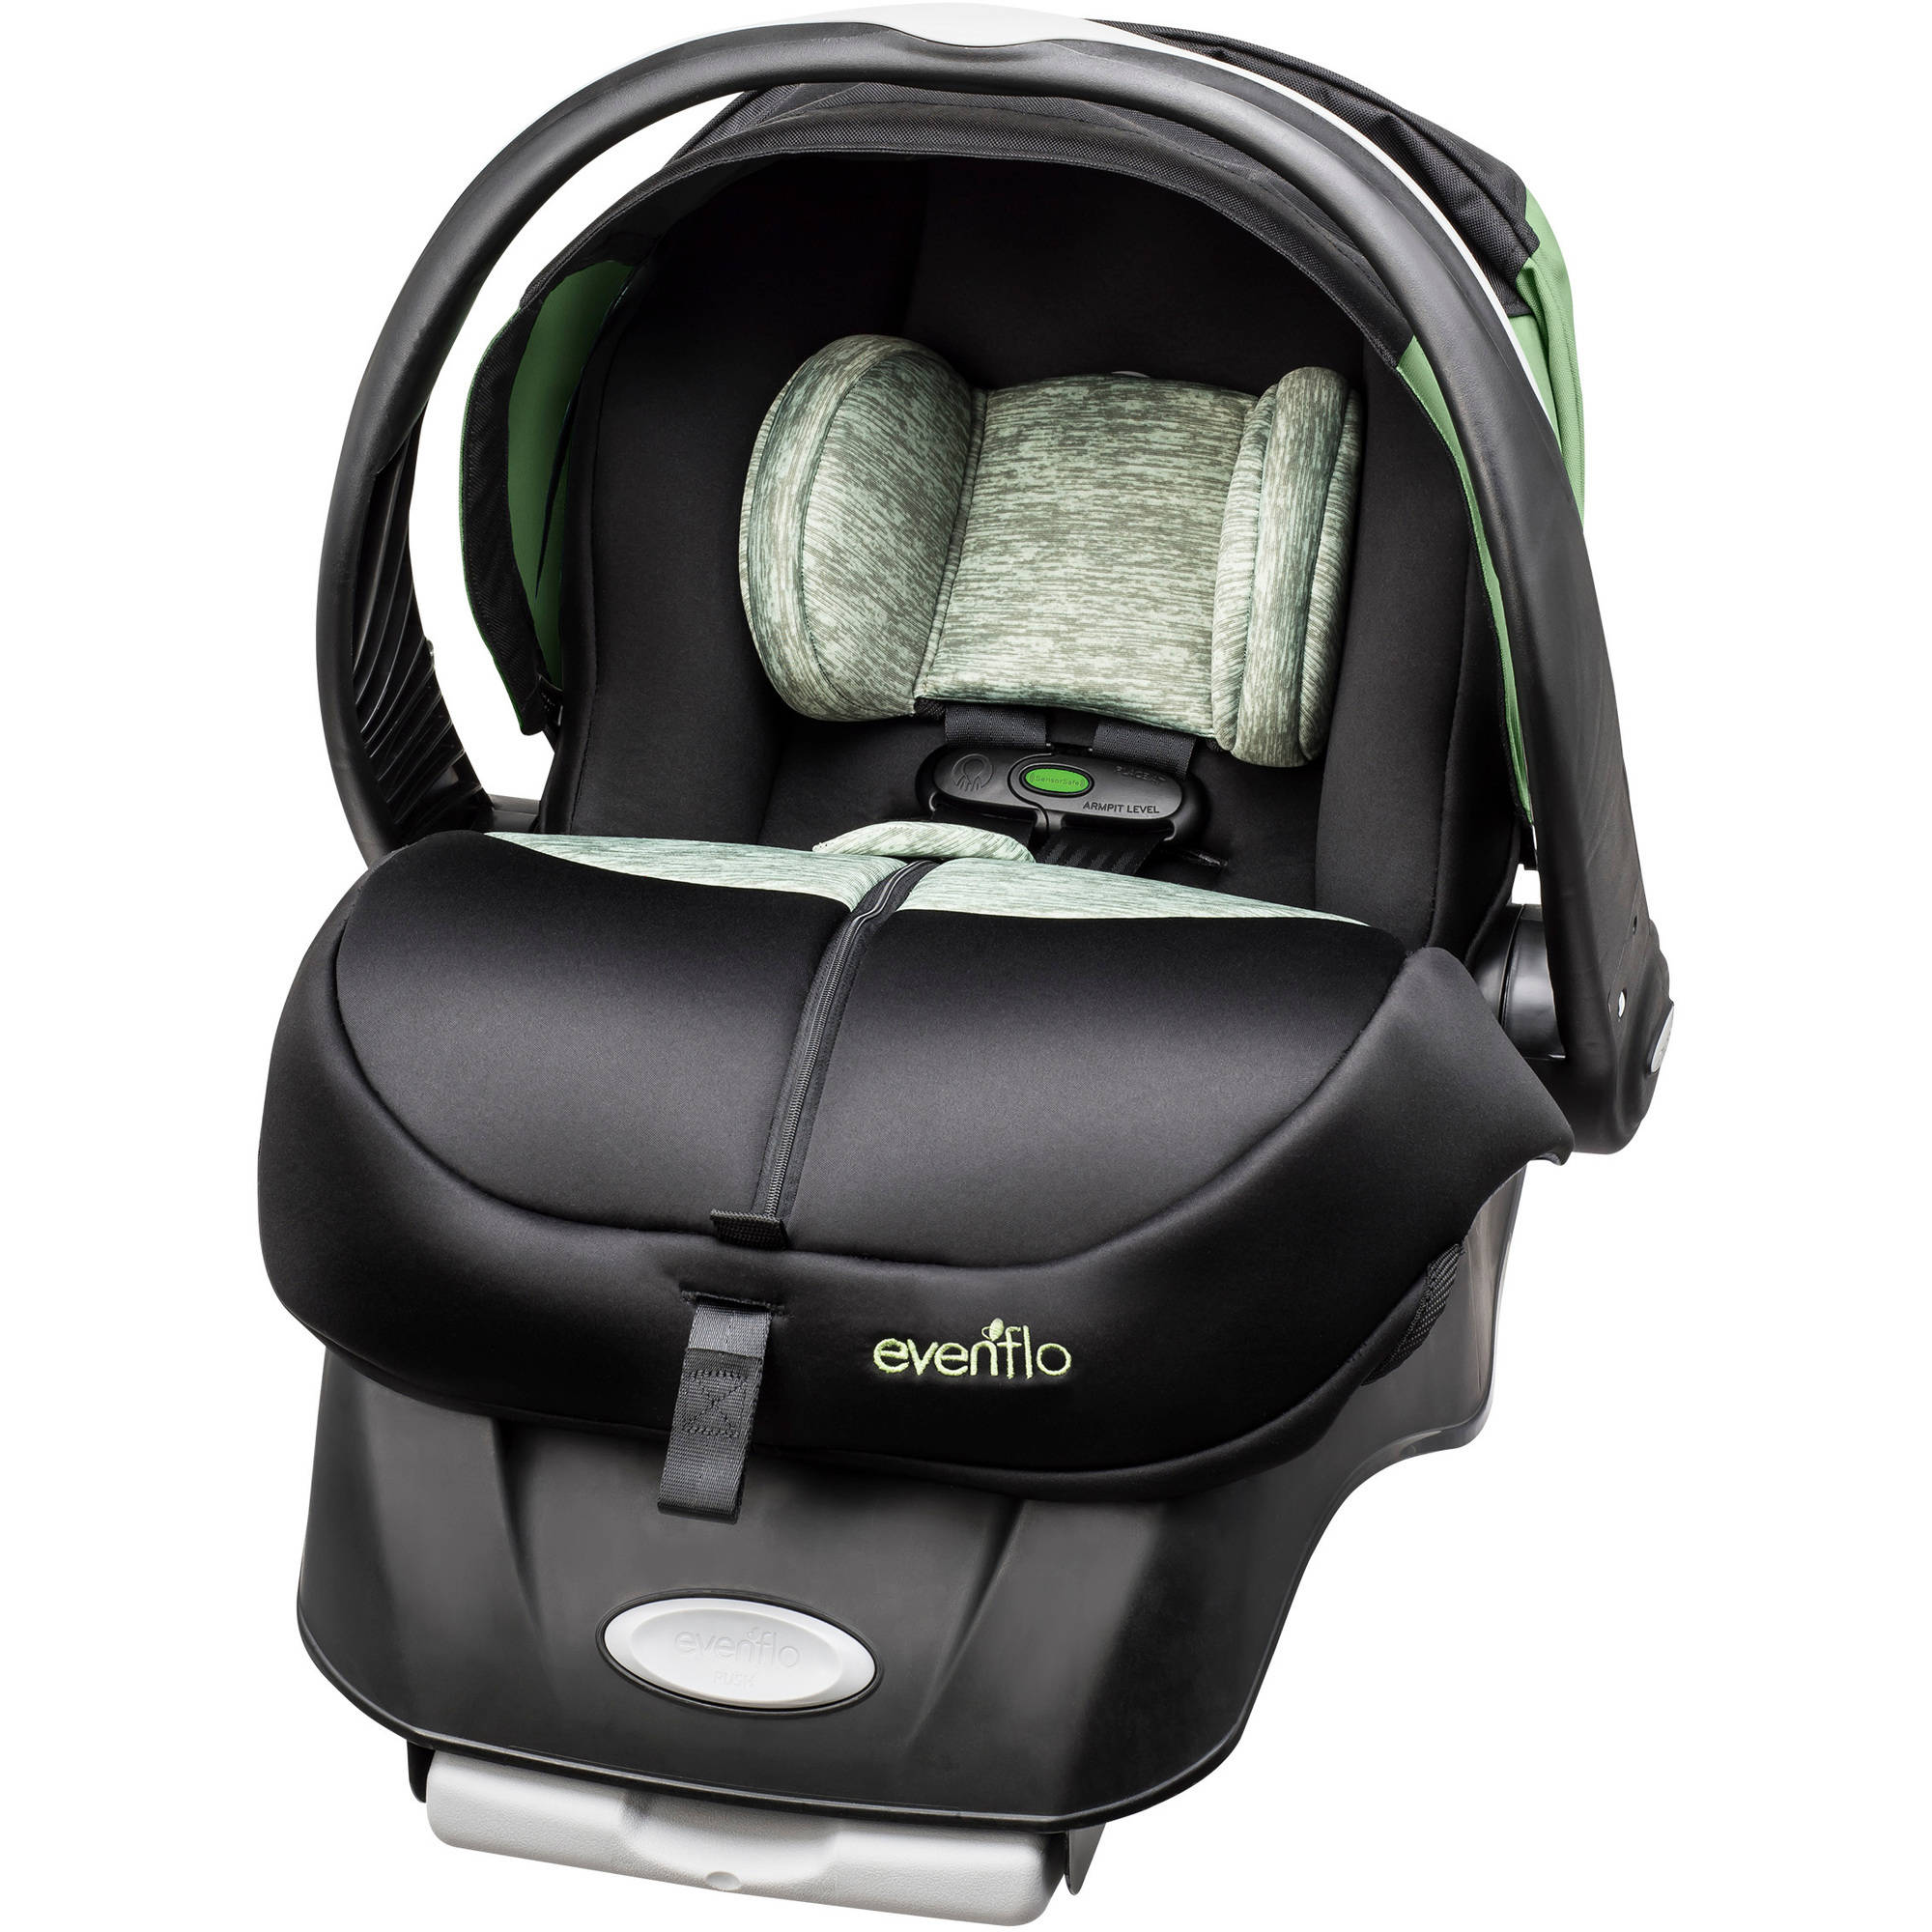 Evenflo Advanced Embrace DLX Infant Car Seat with SensorSafe, Peridot